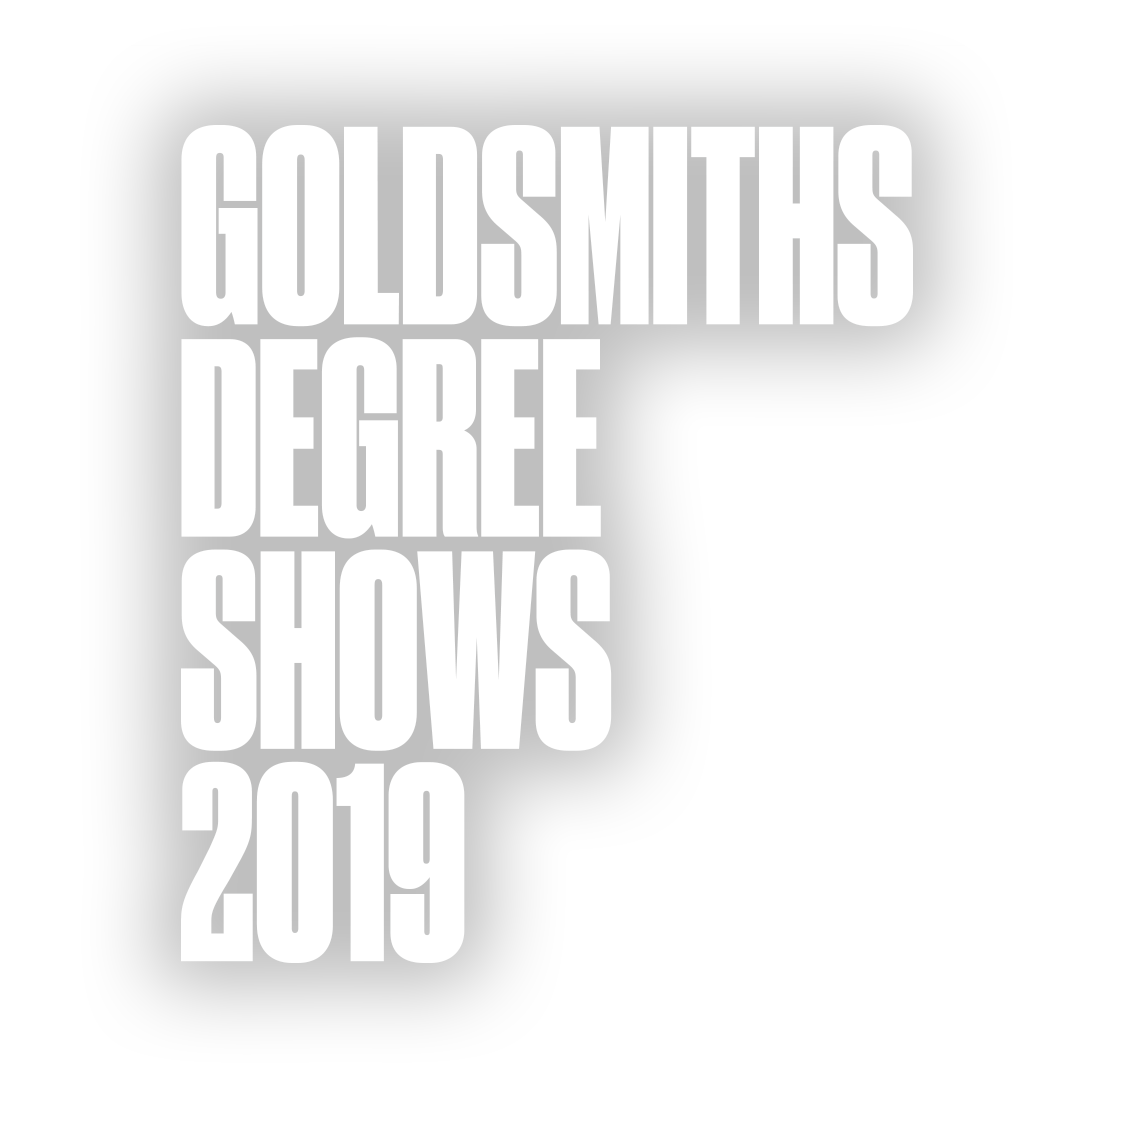 Goldsmiths Degree Shows 2019